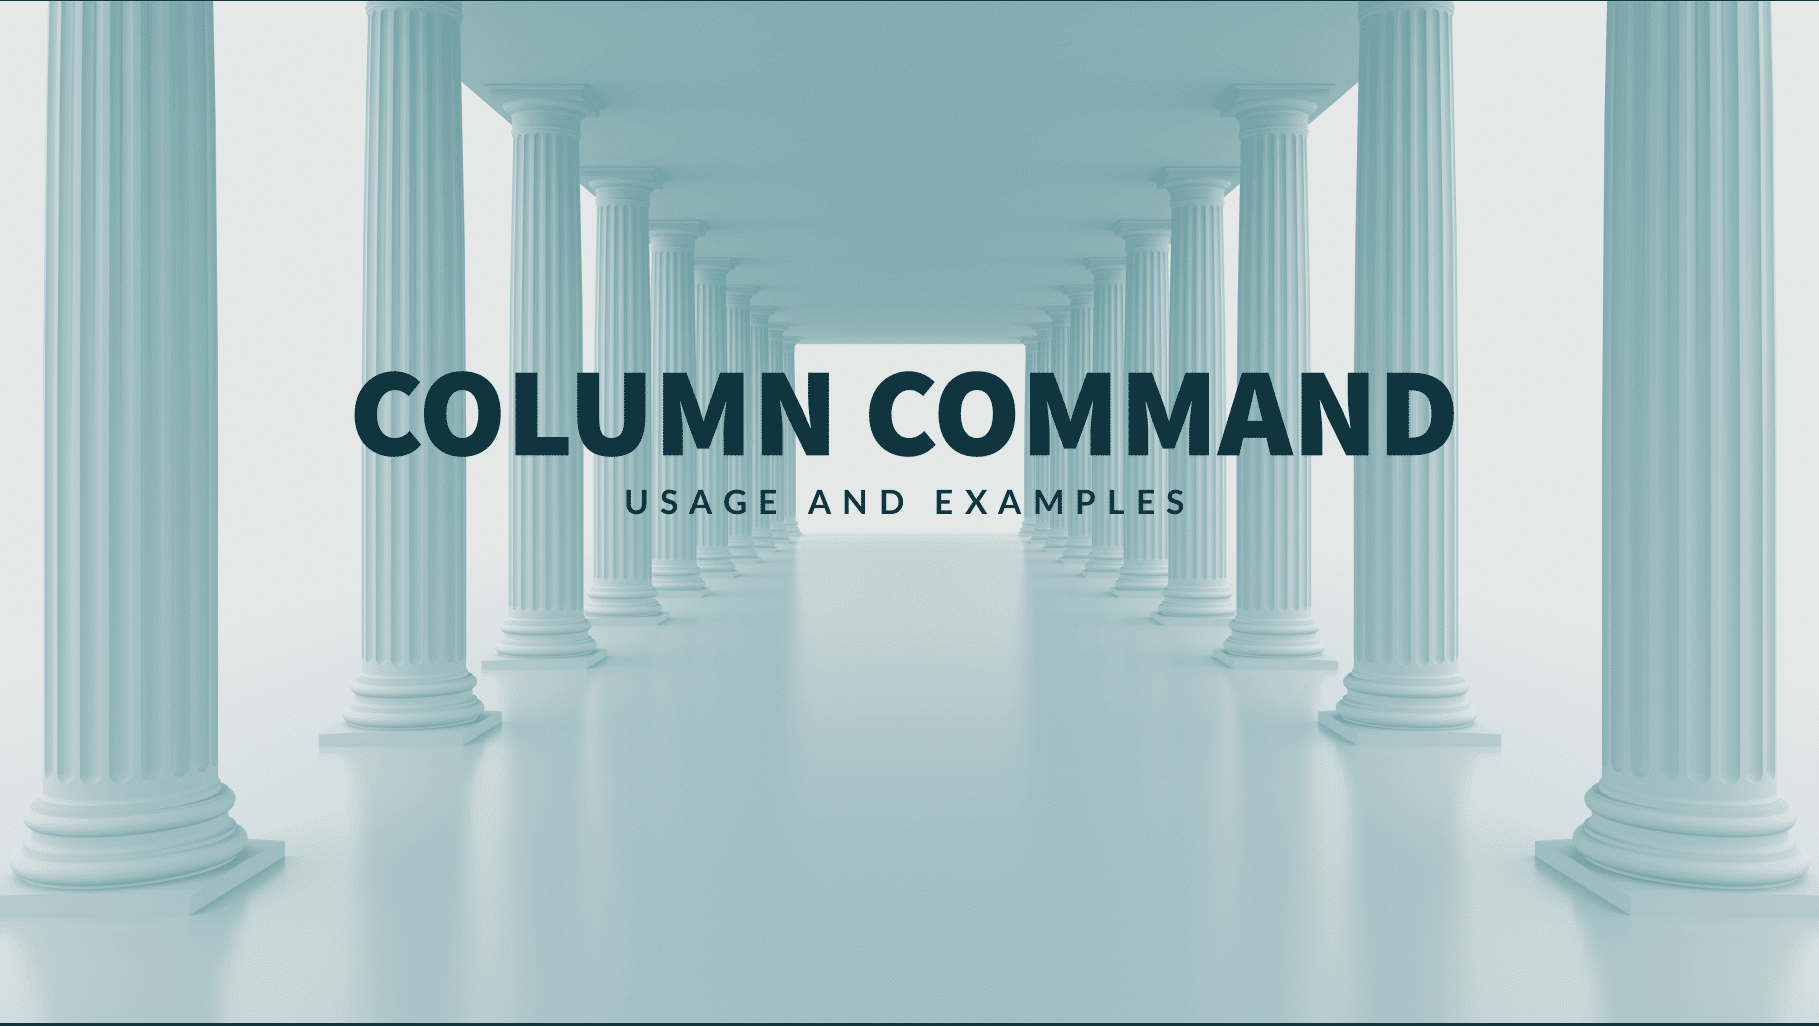 Column Command Usage and Examples